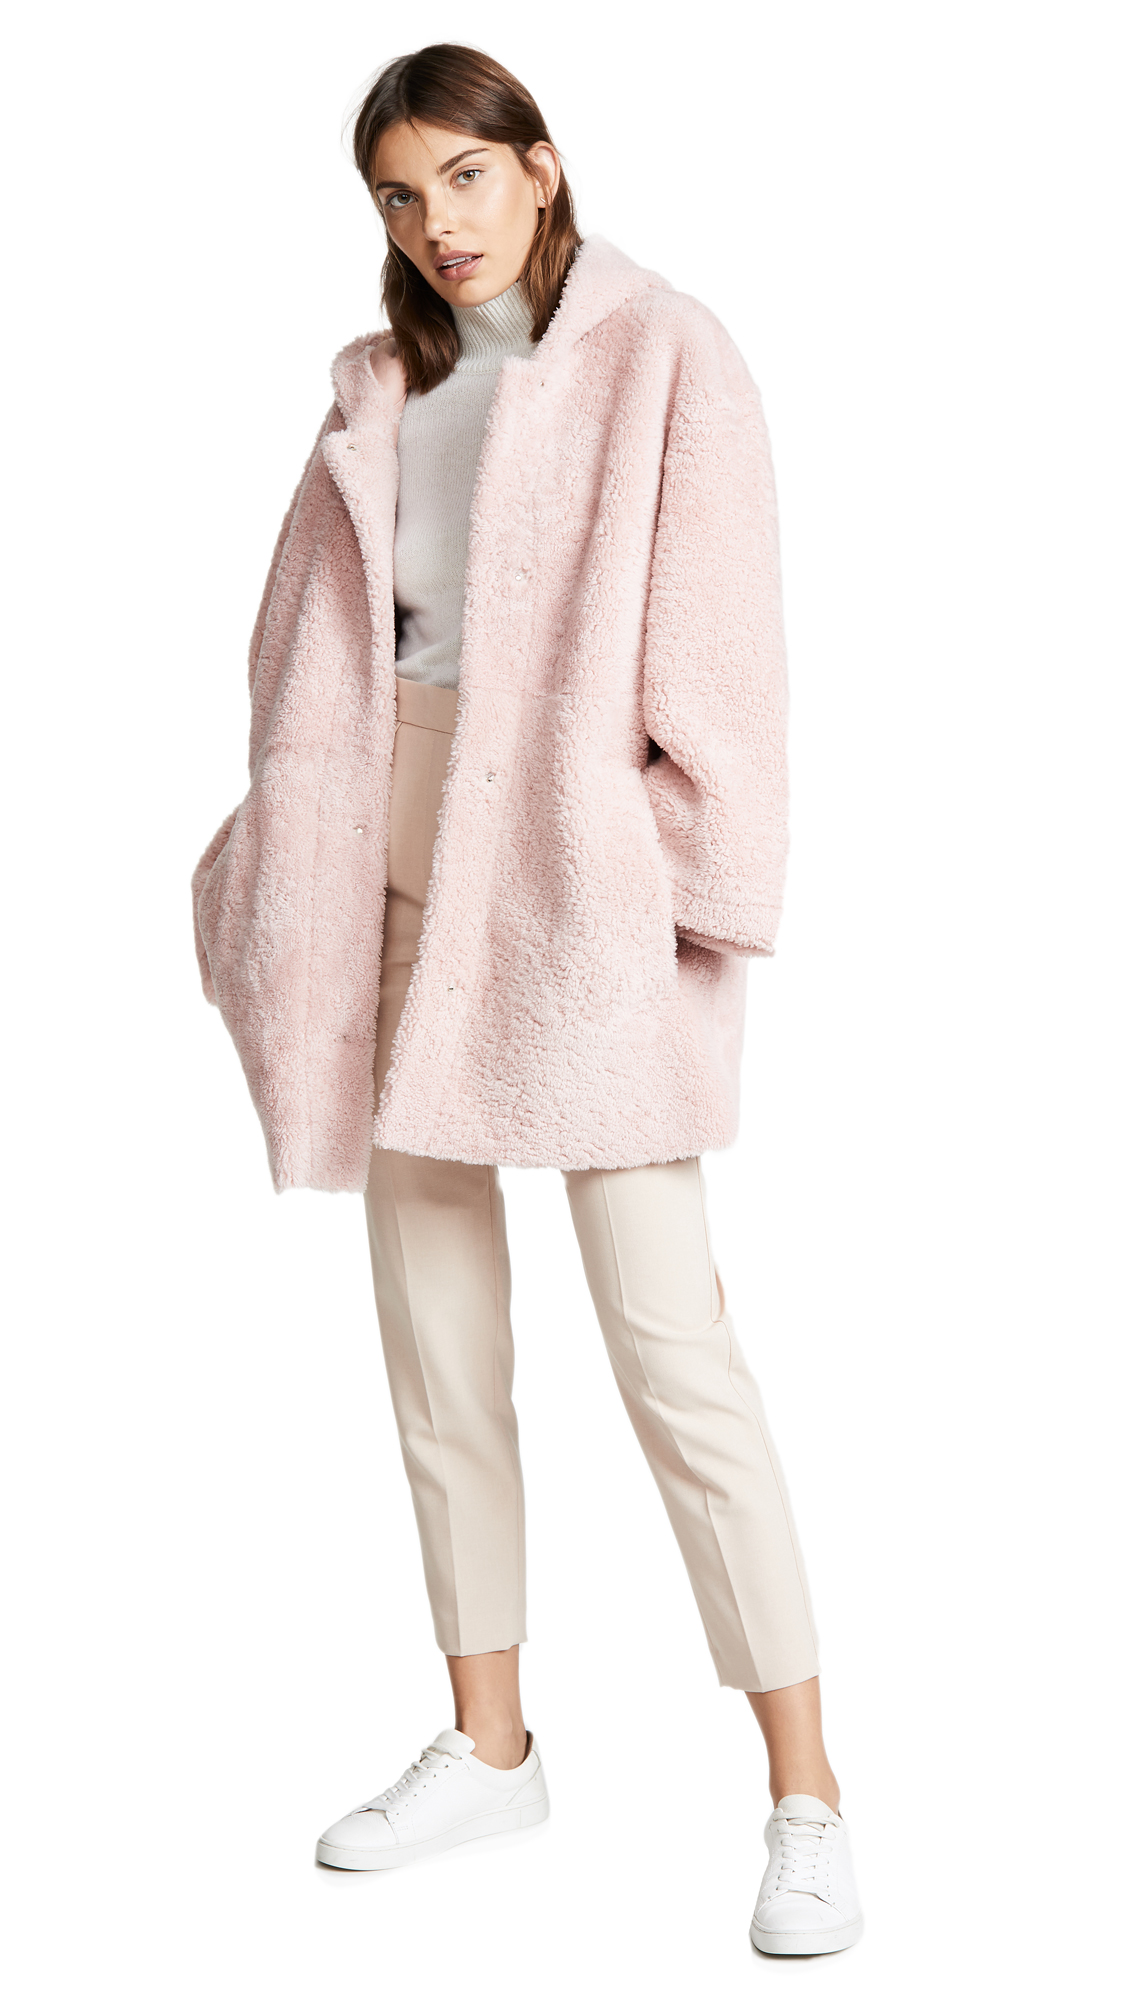 Anne Vest Zineb Shearling Hooded Coat In Light Pink